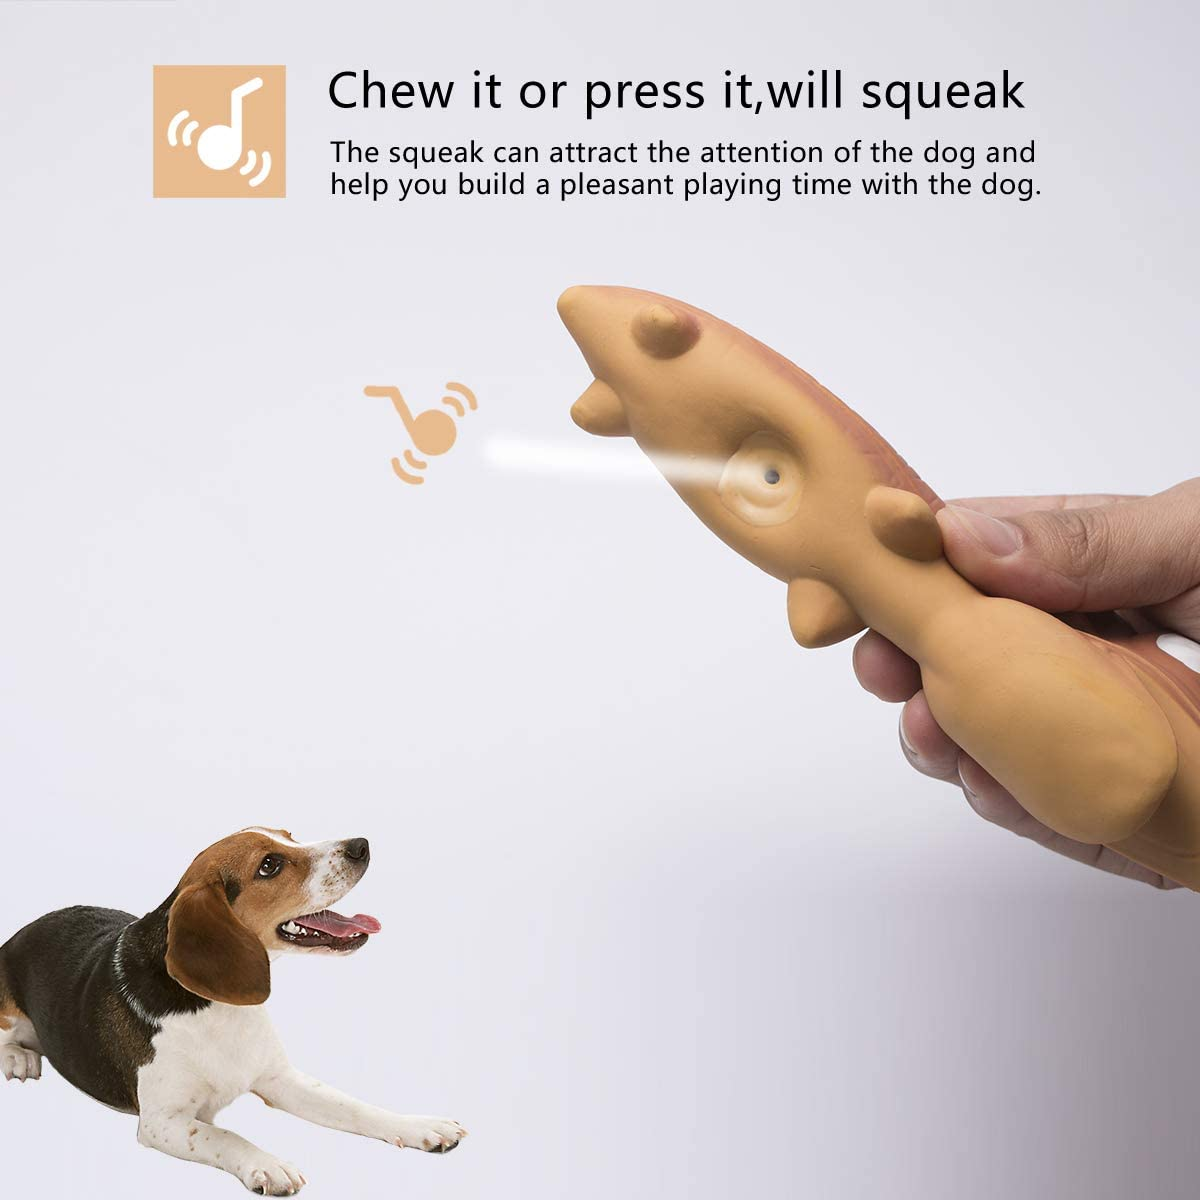 Petper Cw 0123EU Latex Pet Toys for Dog Cat, Squeaky Dog Training Interactive Puppy Play Toys